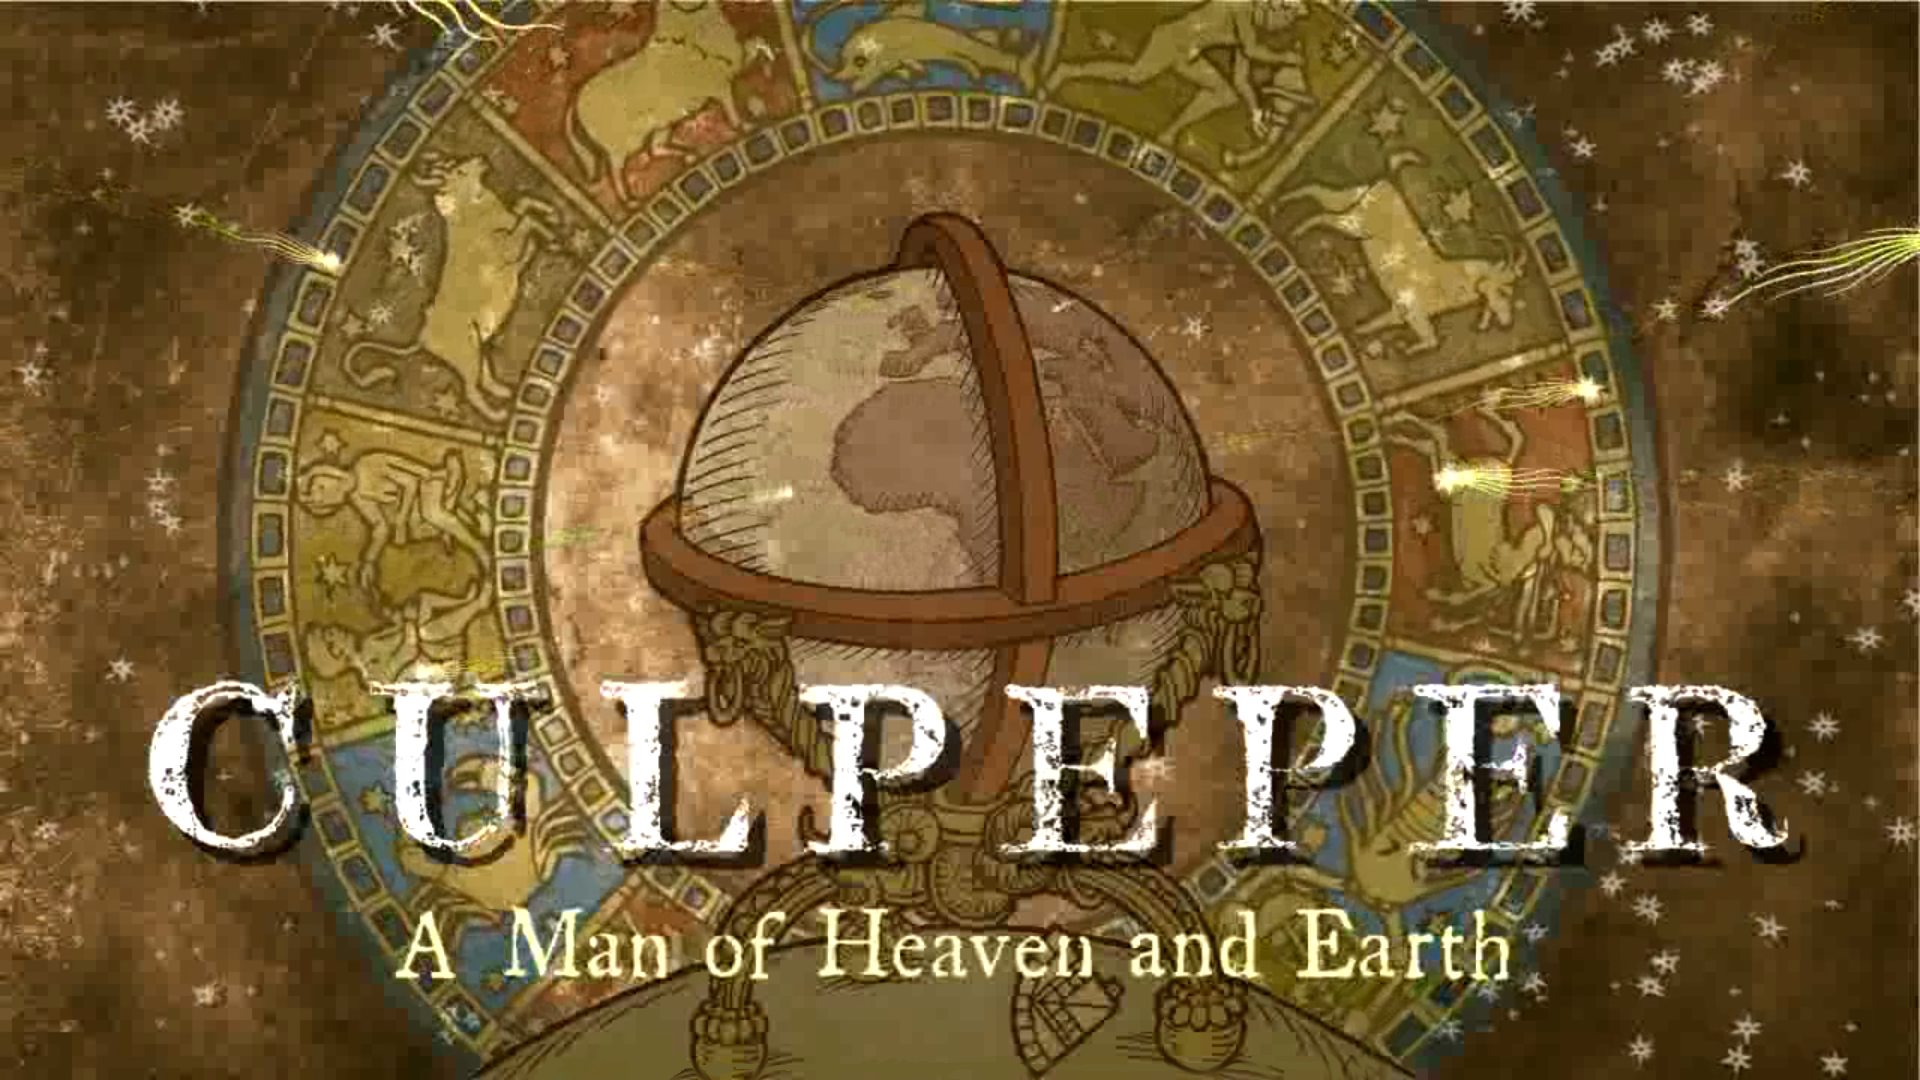 Opening titles for the 'Culpeper' movie.